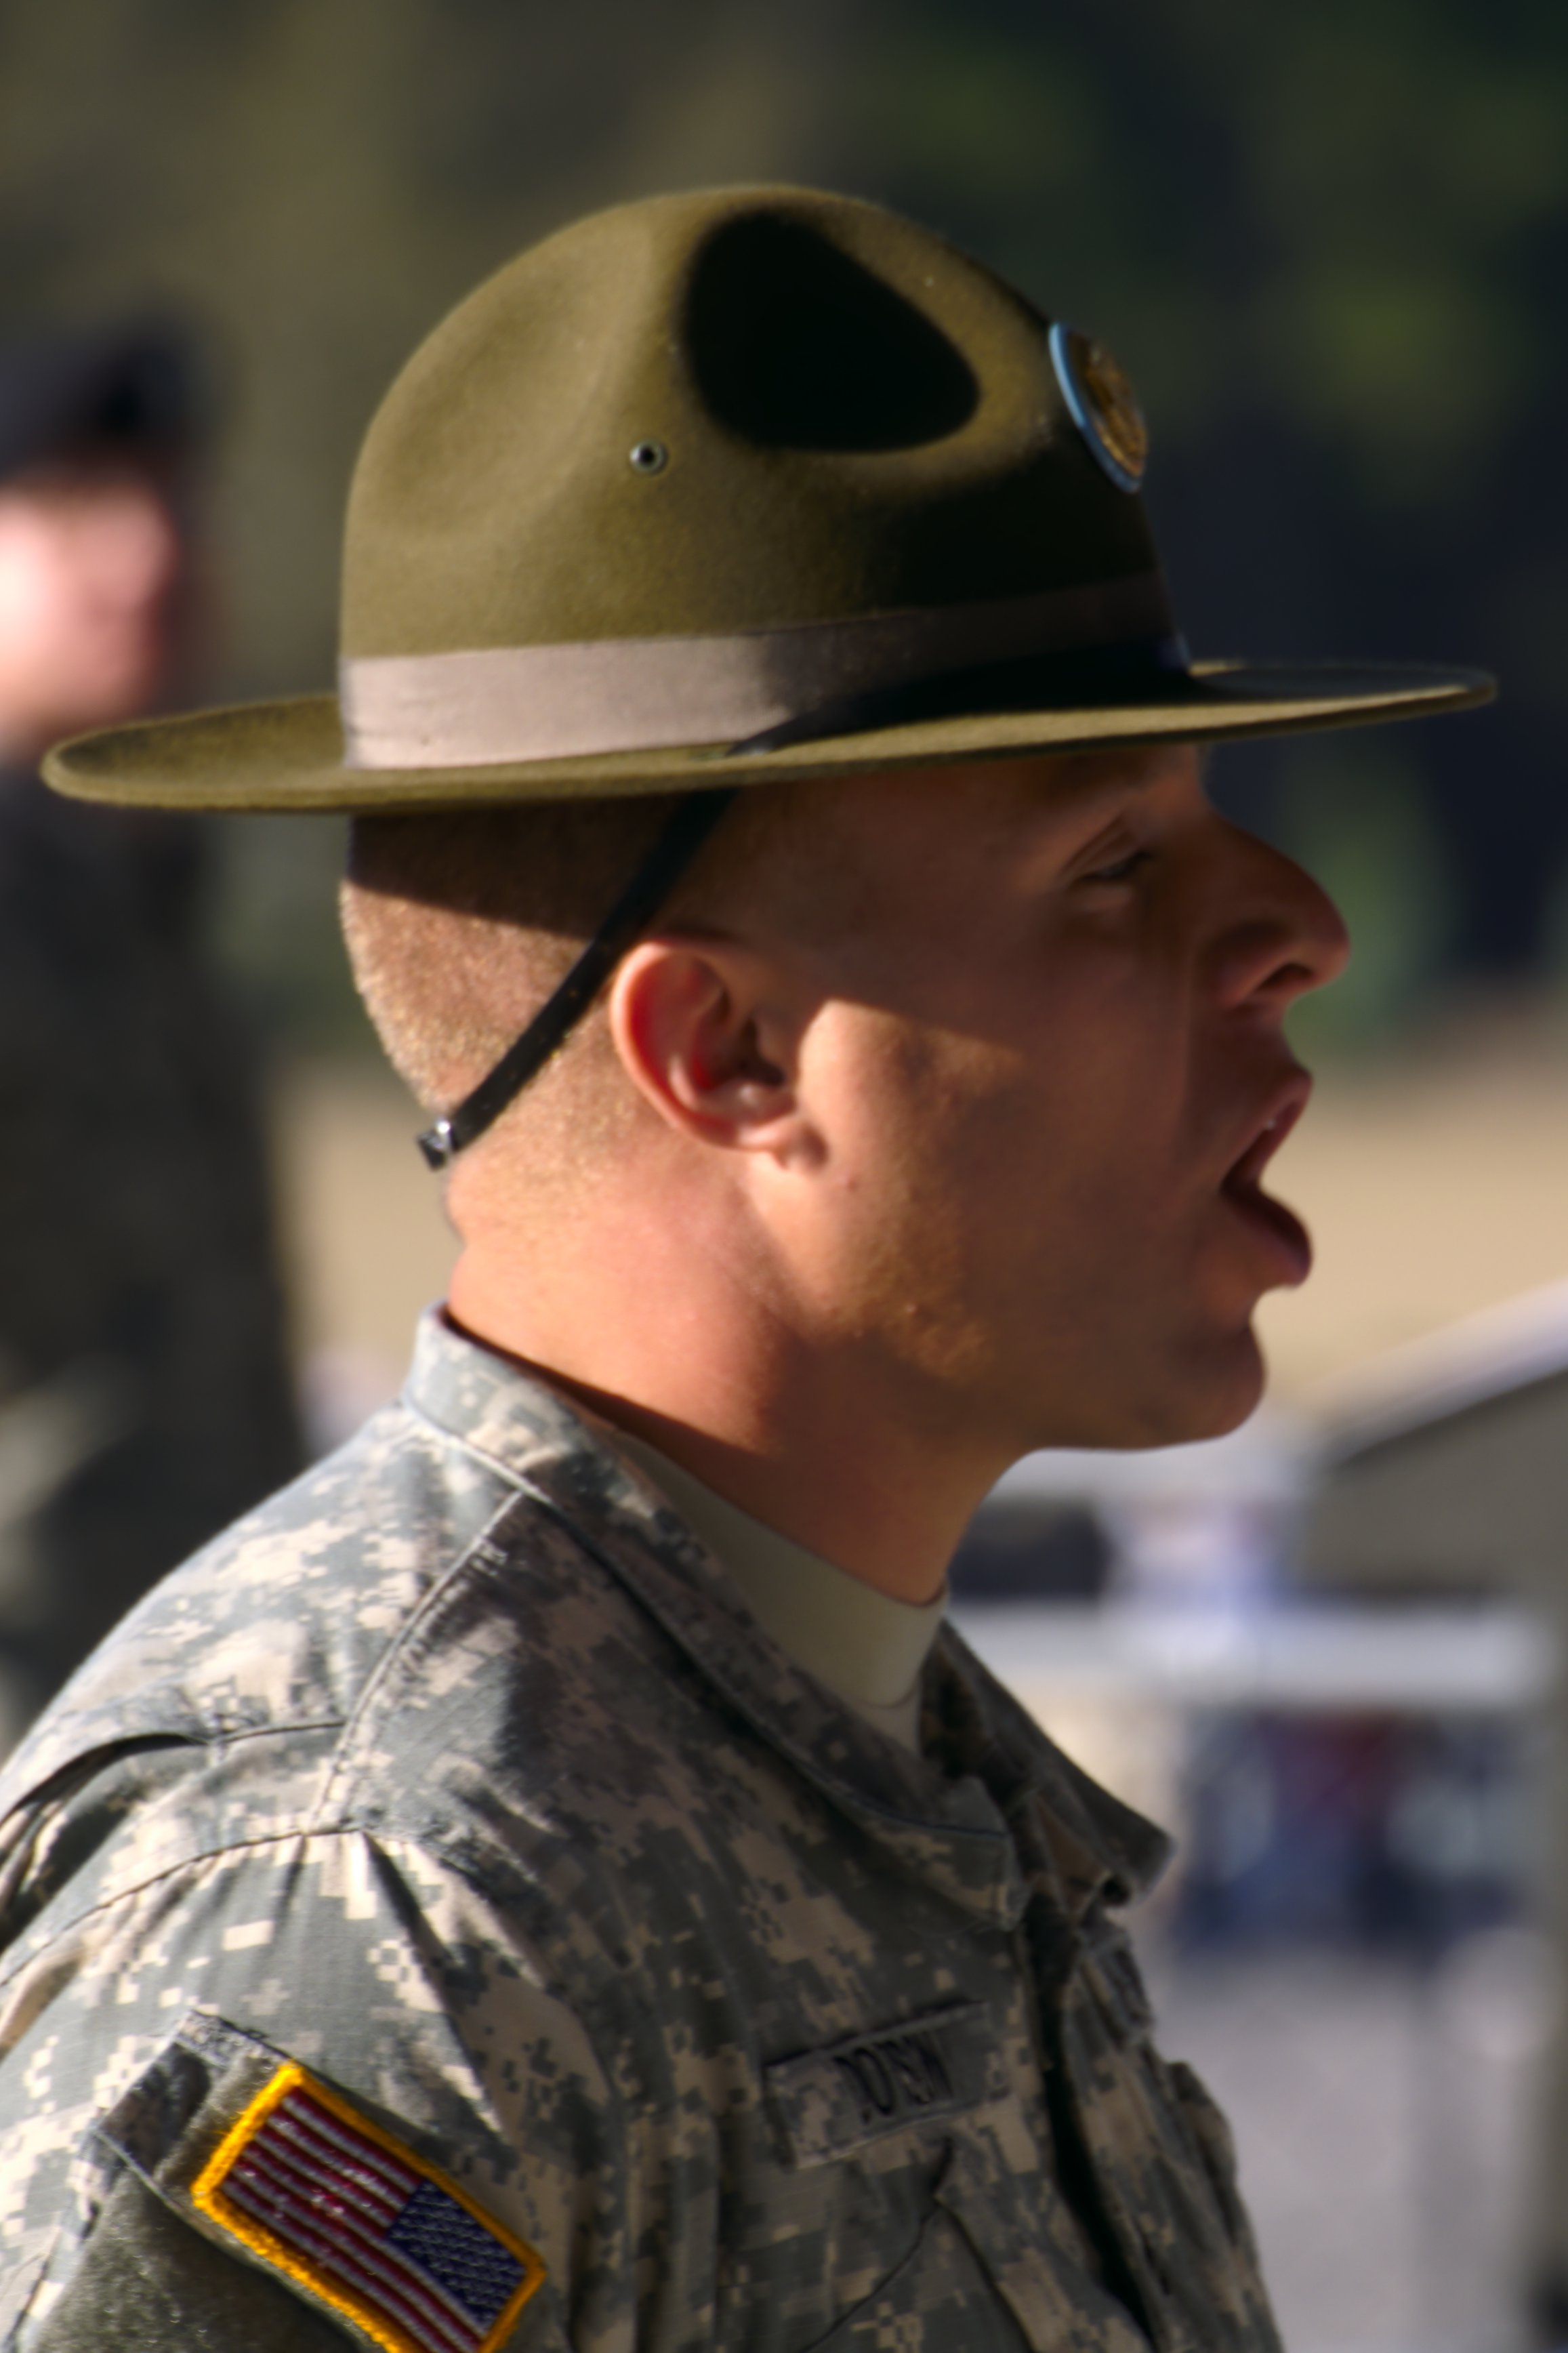 Big image link  Drill Sergeant Hat